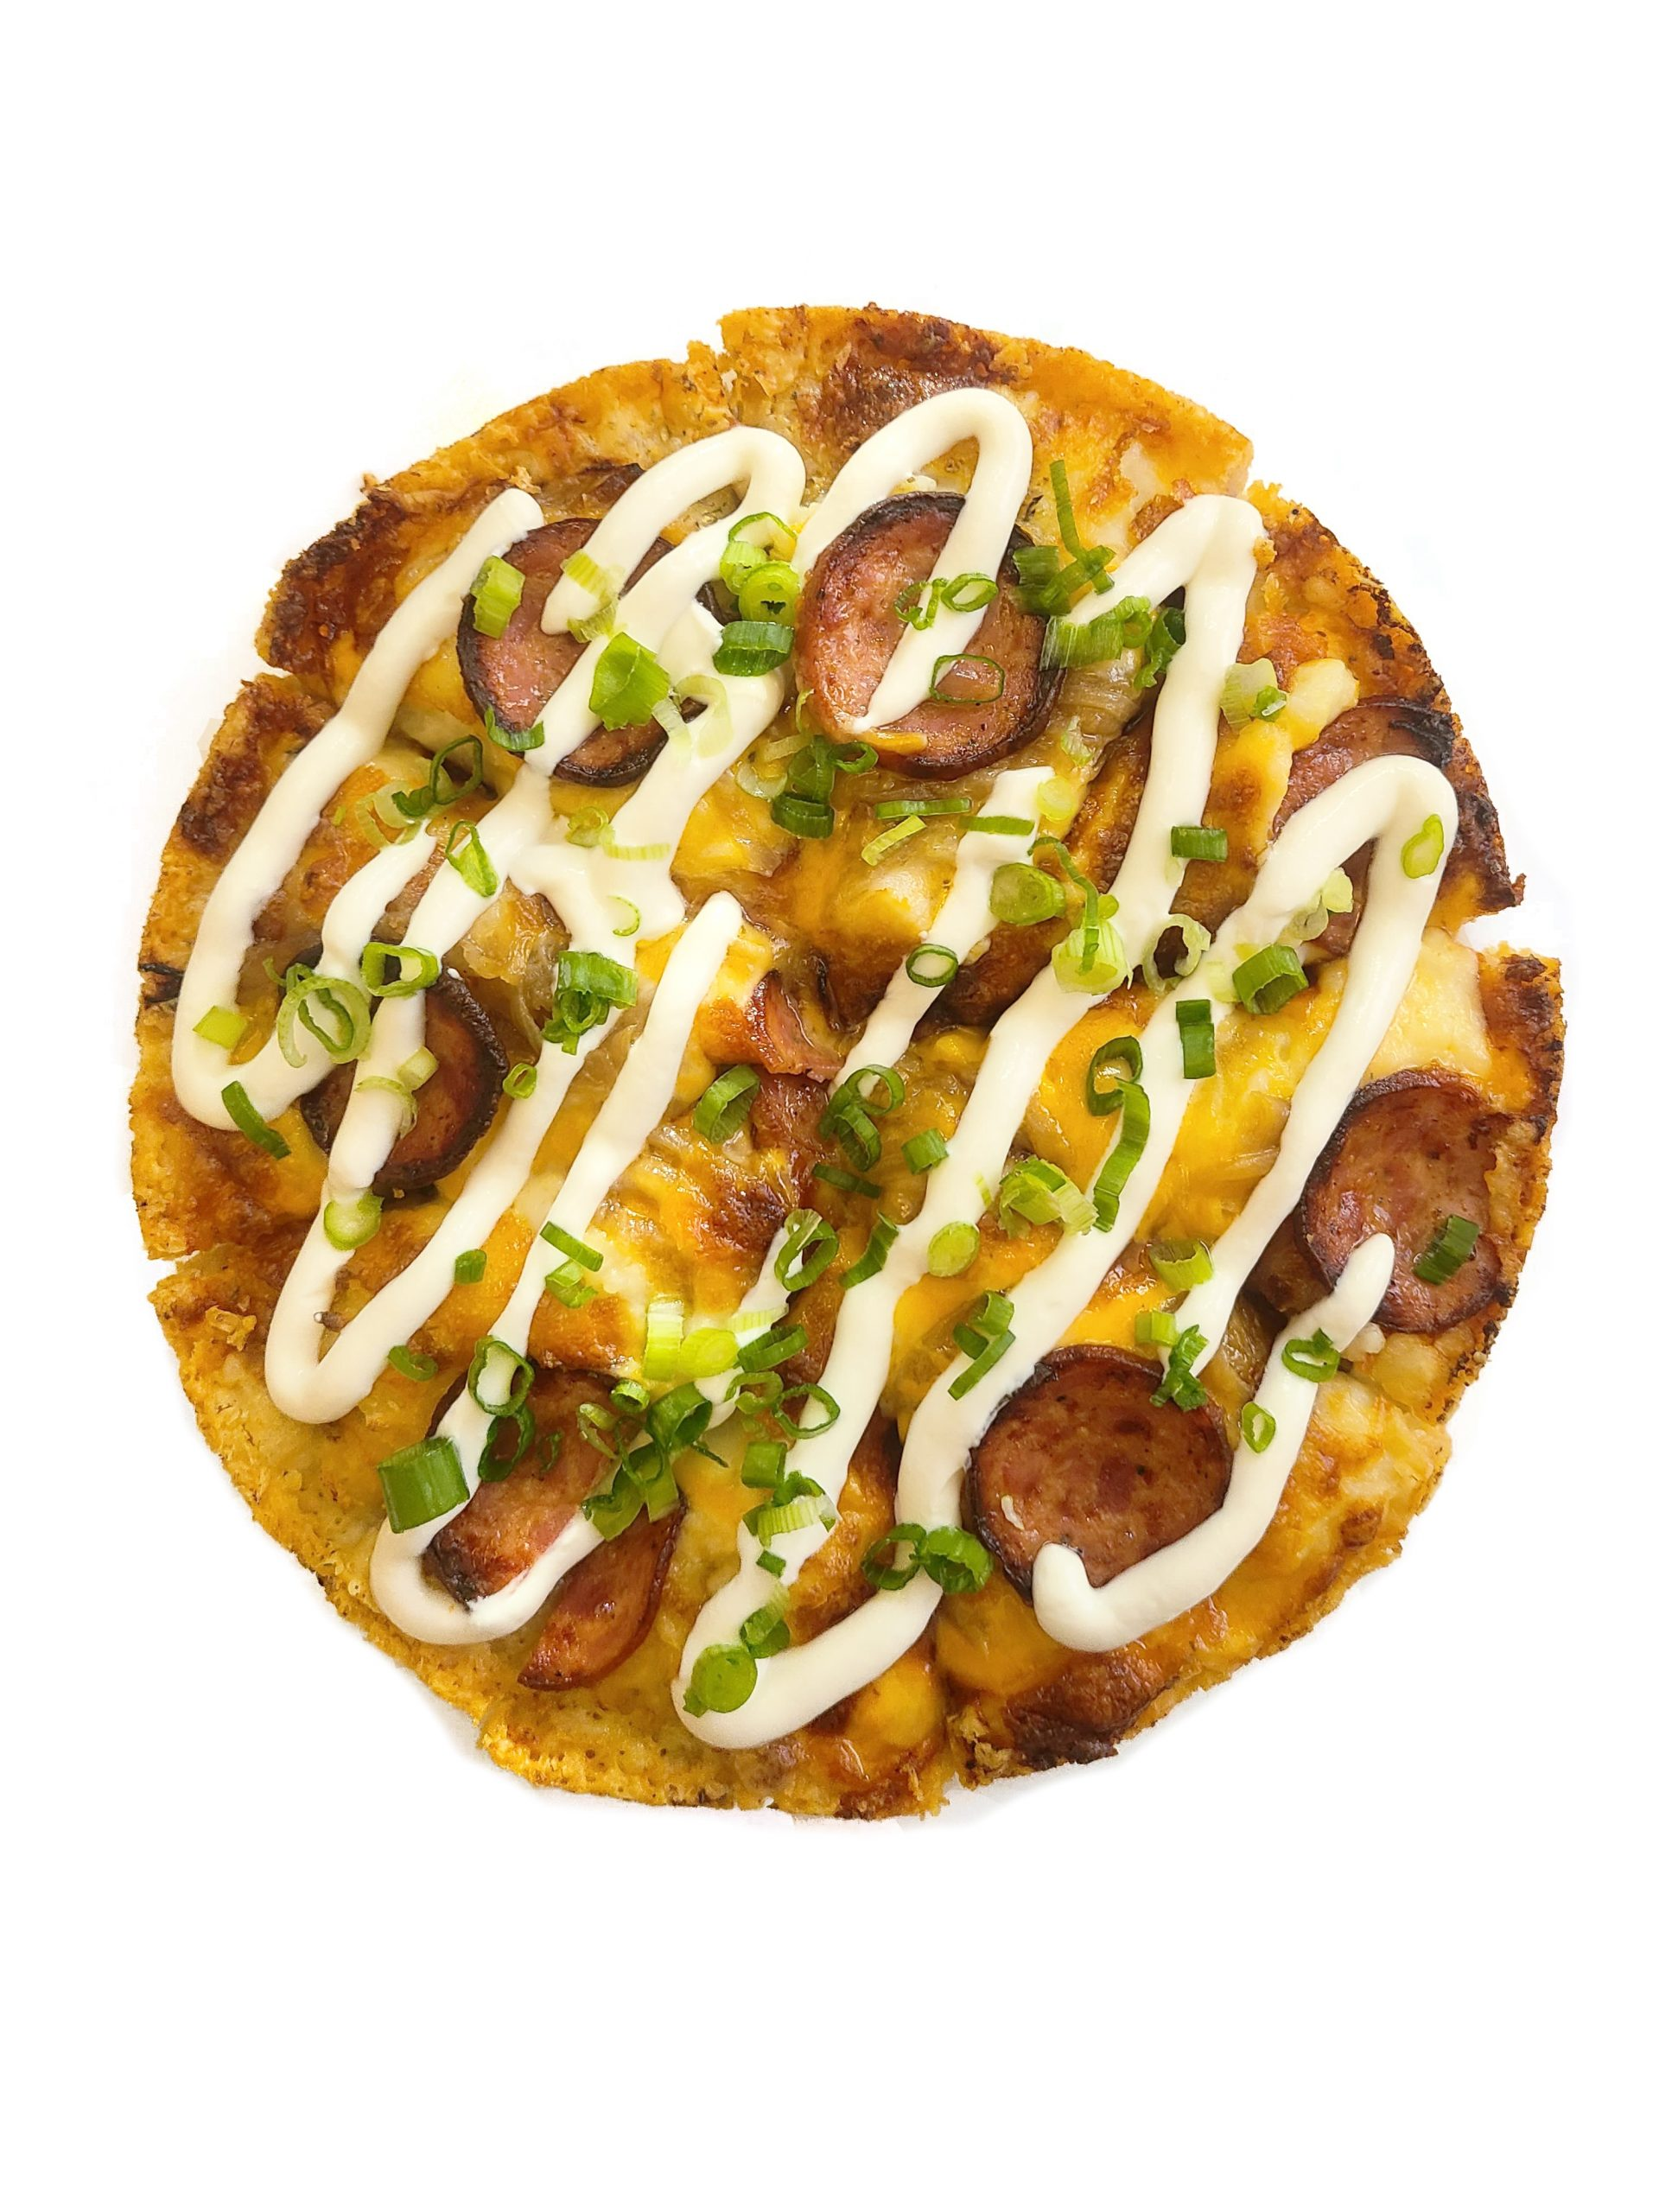 overhead image of pierogi pizza with drizzled sour cream